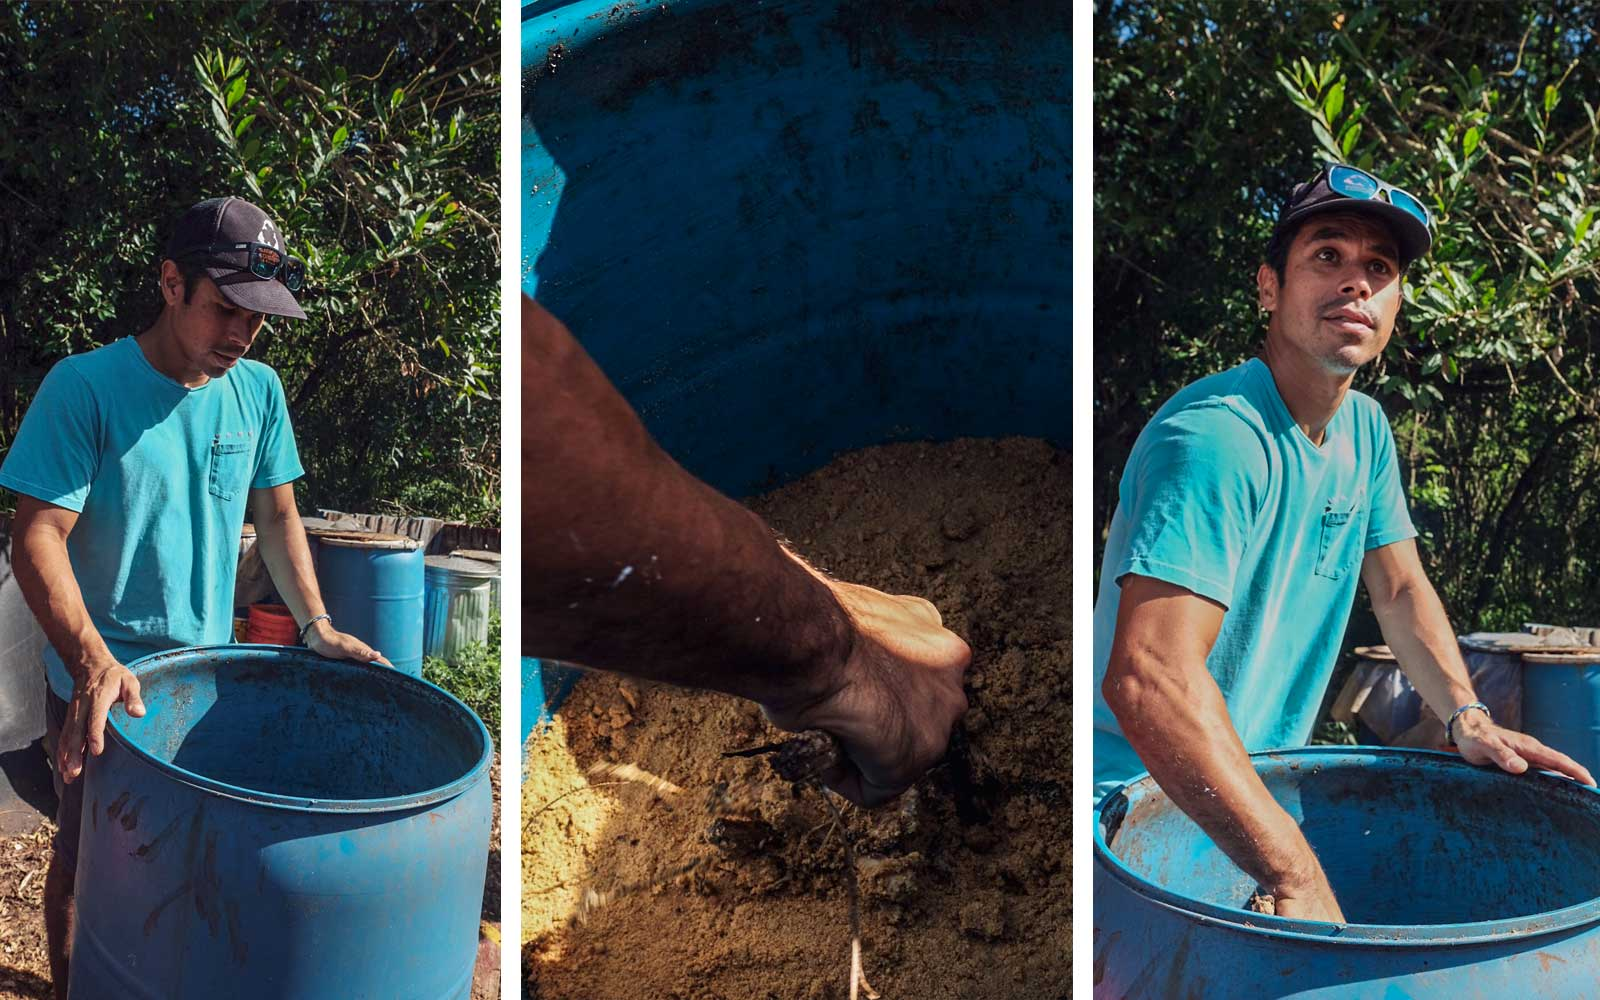 Kahi Pacarro, Executive Director of Sustainable Coastline Hawaii, sifts through compost.